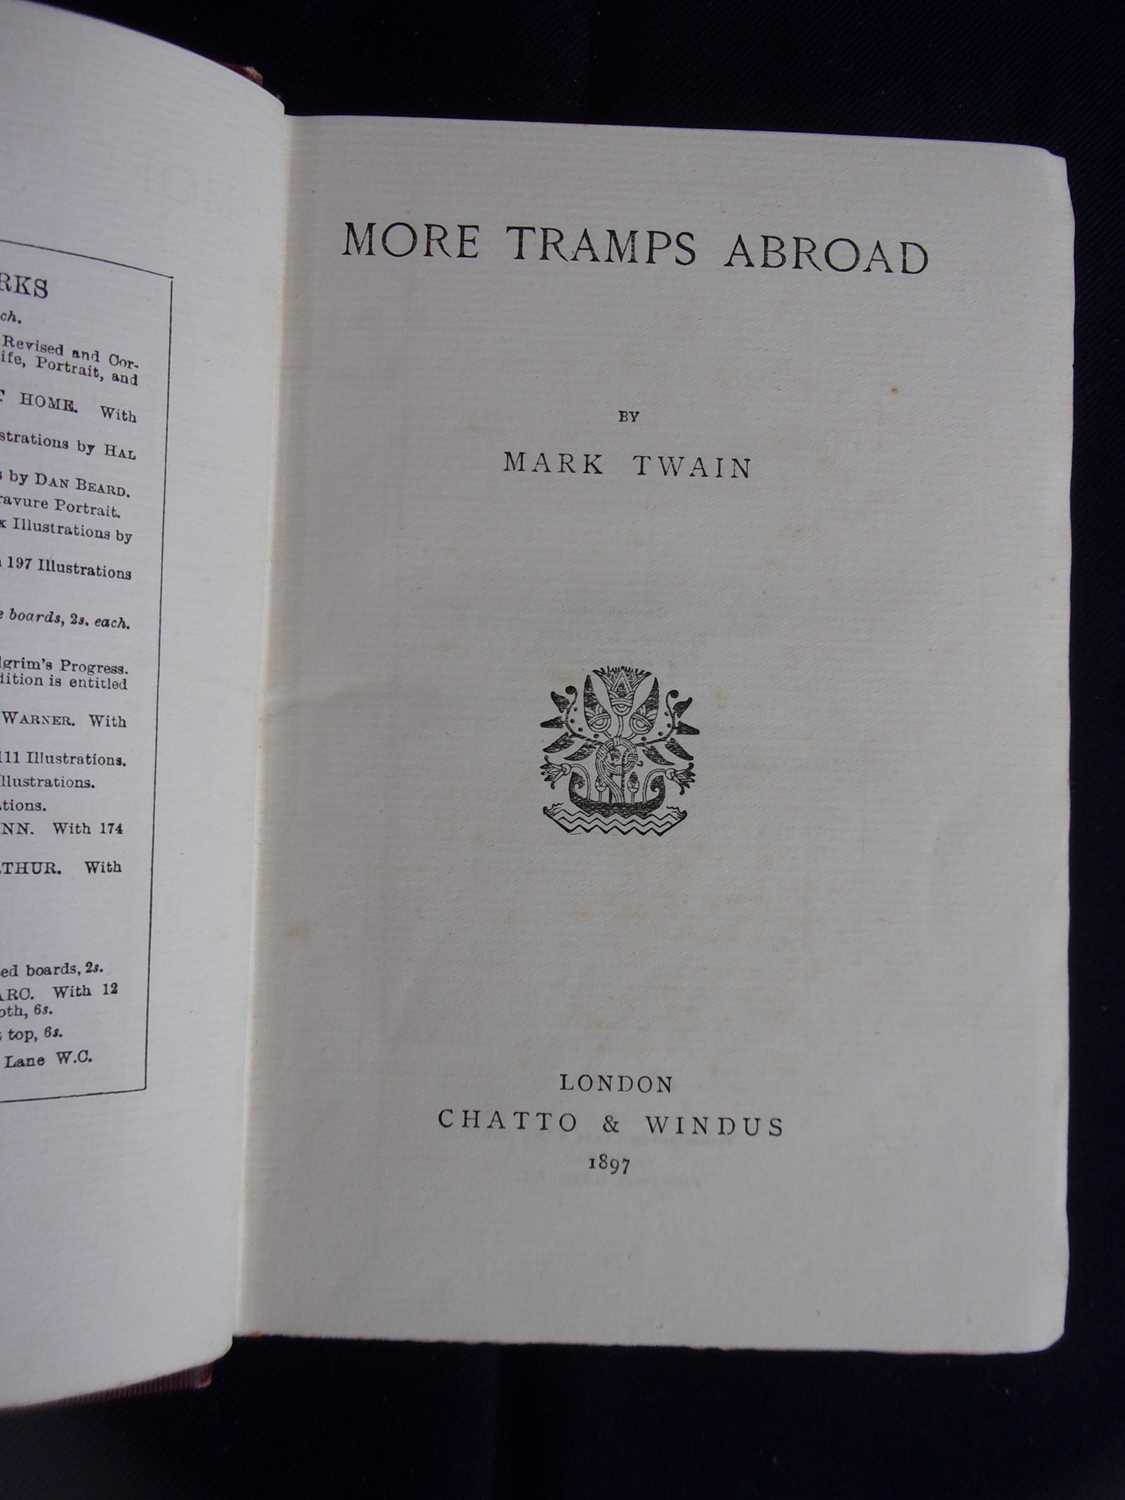 TWAIN, Mark. More Tramps Abroad. Chatto & Windus, London. 1897 UK 1st Edition. In original - Image 3 of 3